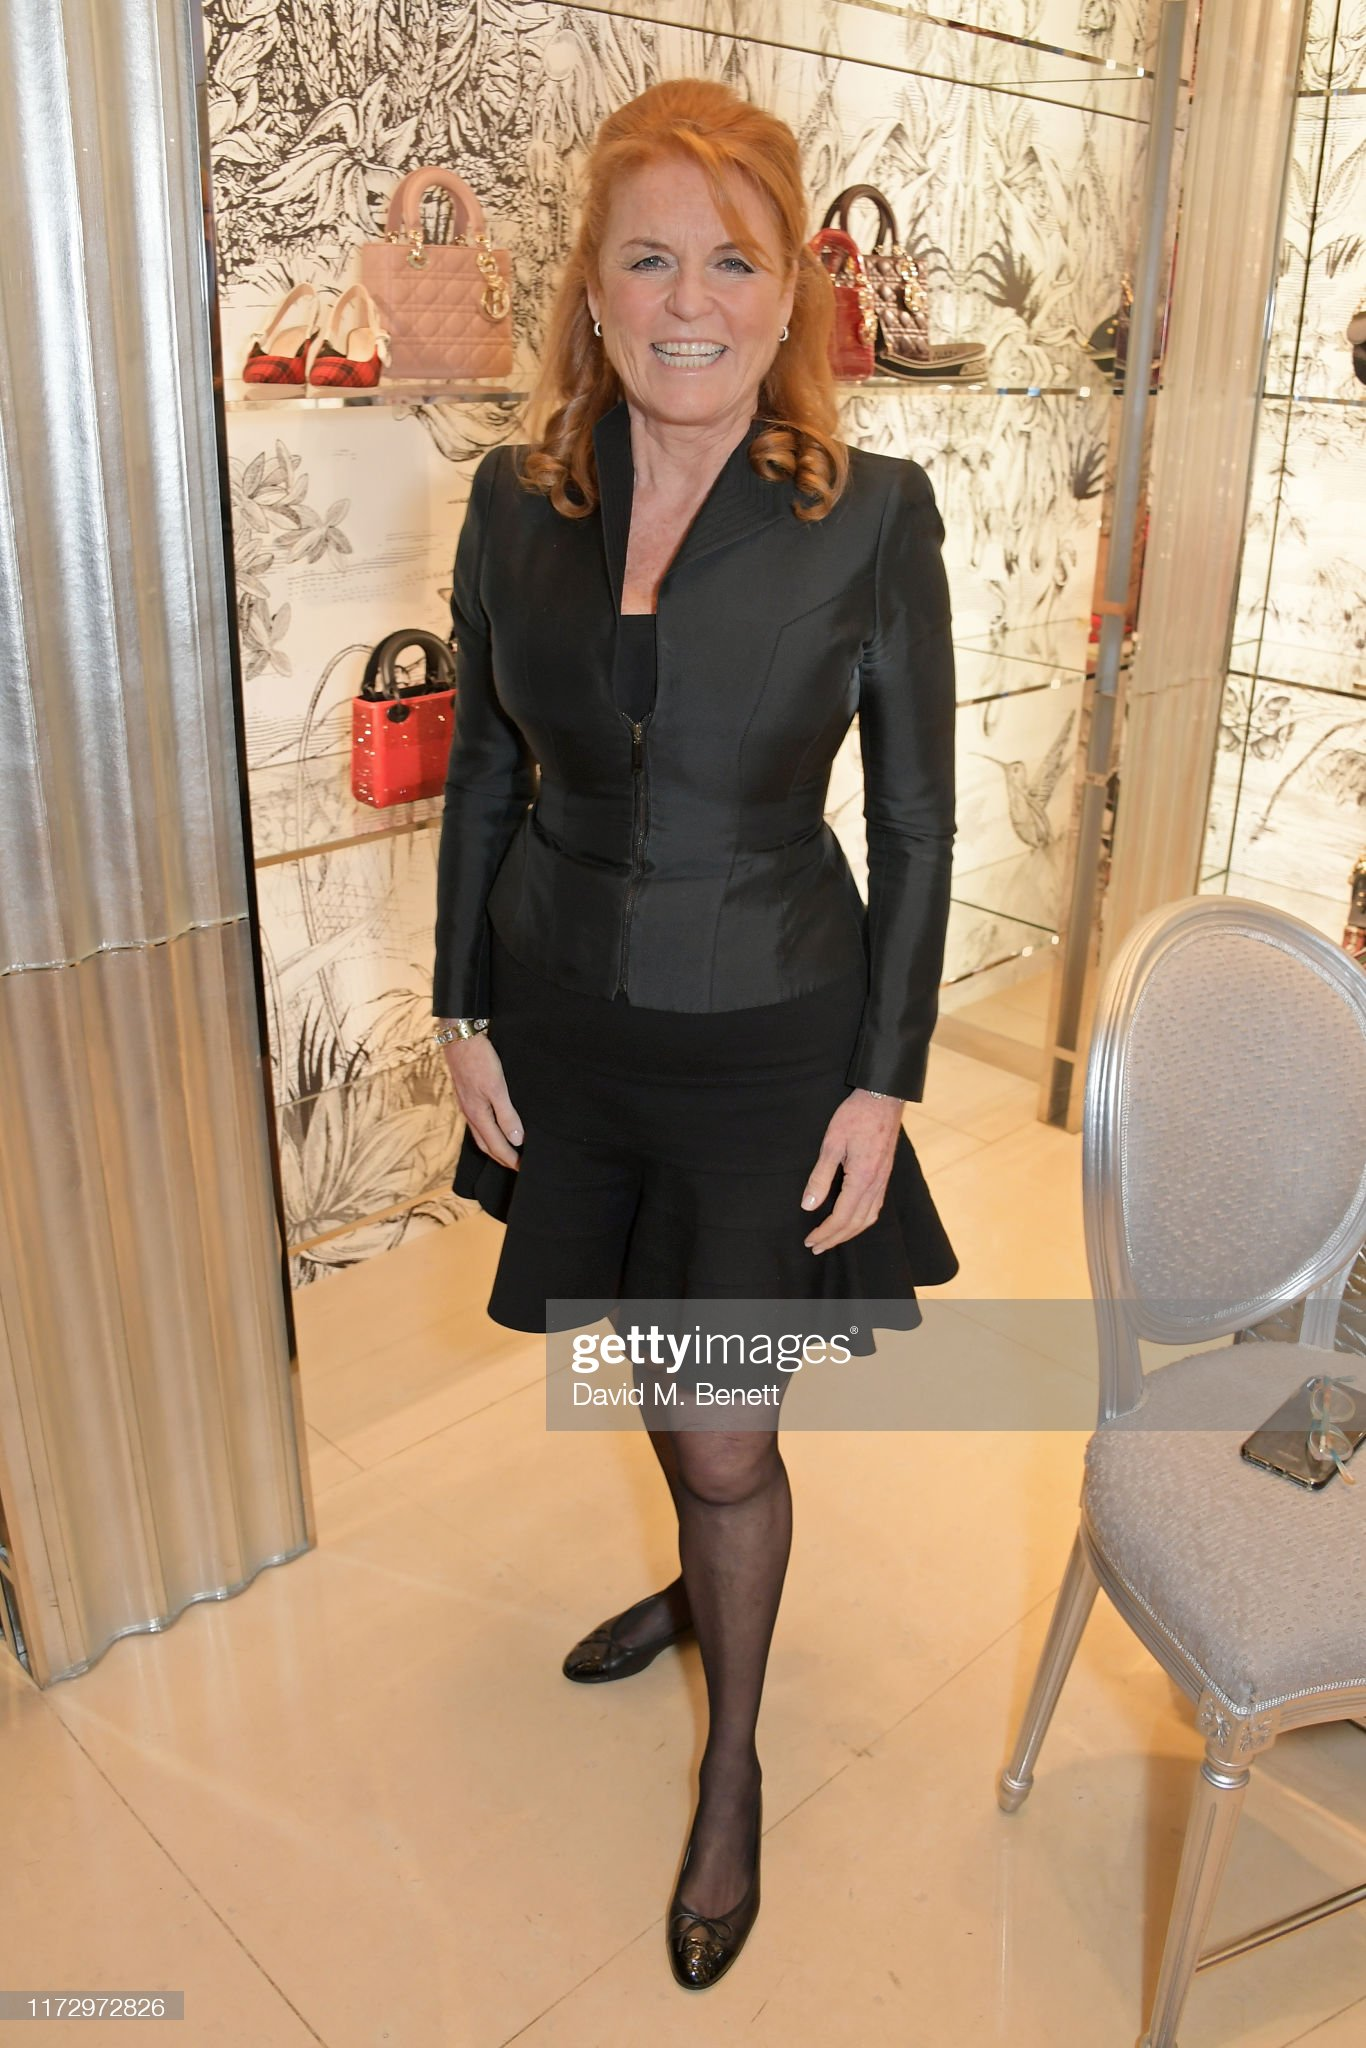 https://media.gettyimages.com/photos/sarah-duchess-of-york-attends-the-dior-sessions-book-launch-on-01-picture-id1172972826?s=2048x2048